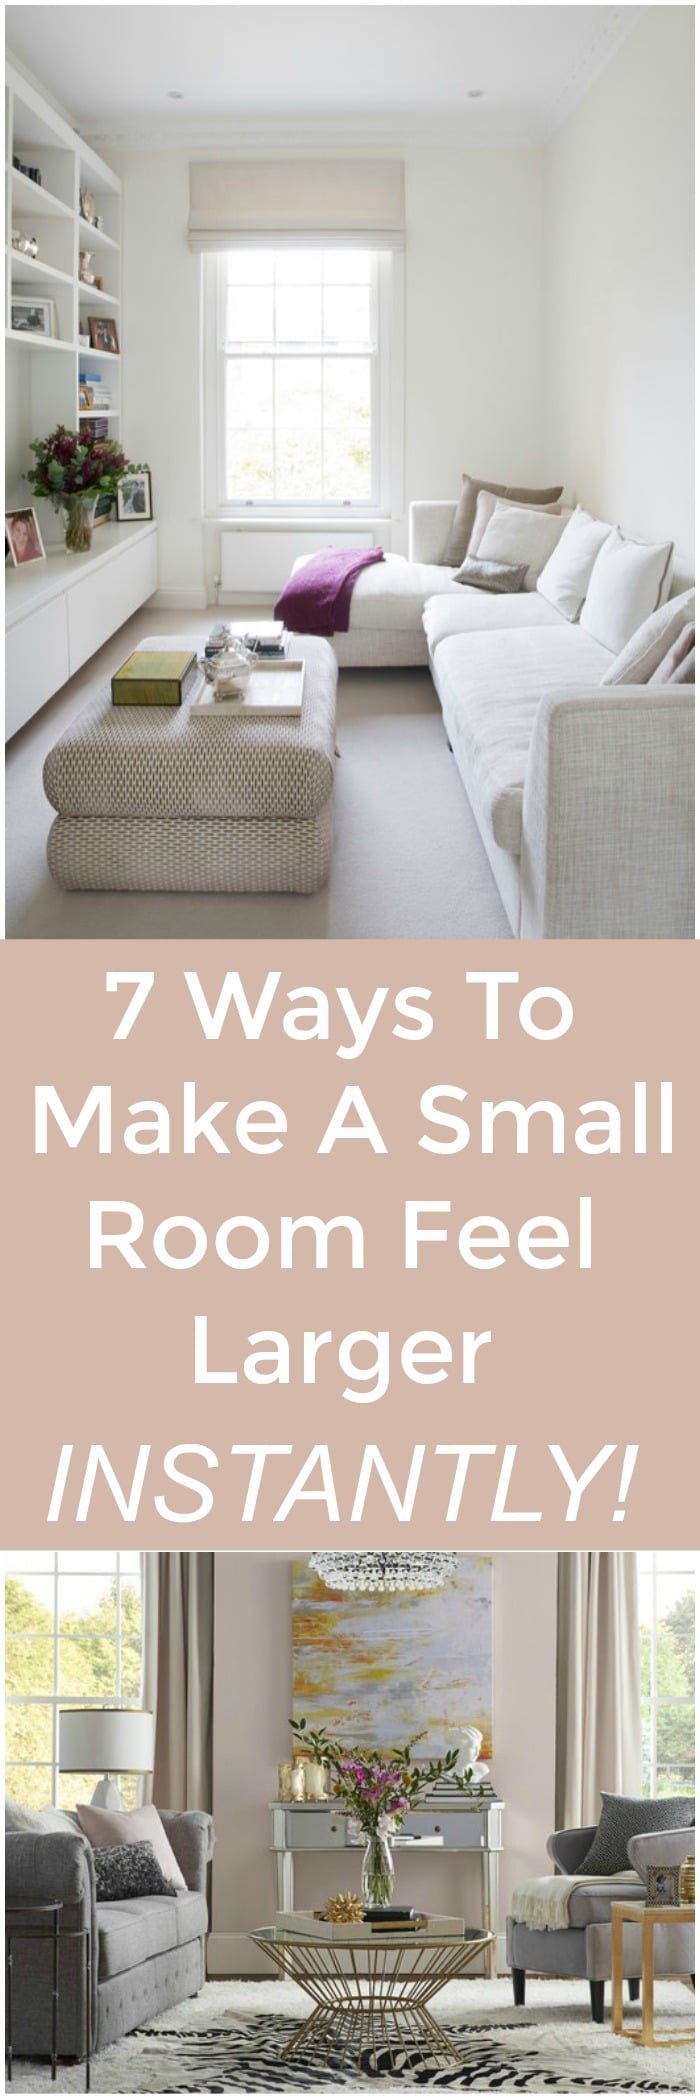 7 Ways To Make A Small Room Feel Larger Instantly! #room #livingroom #larger #design #decor #interiors #decortips #decorideas